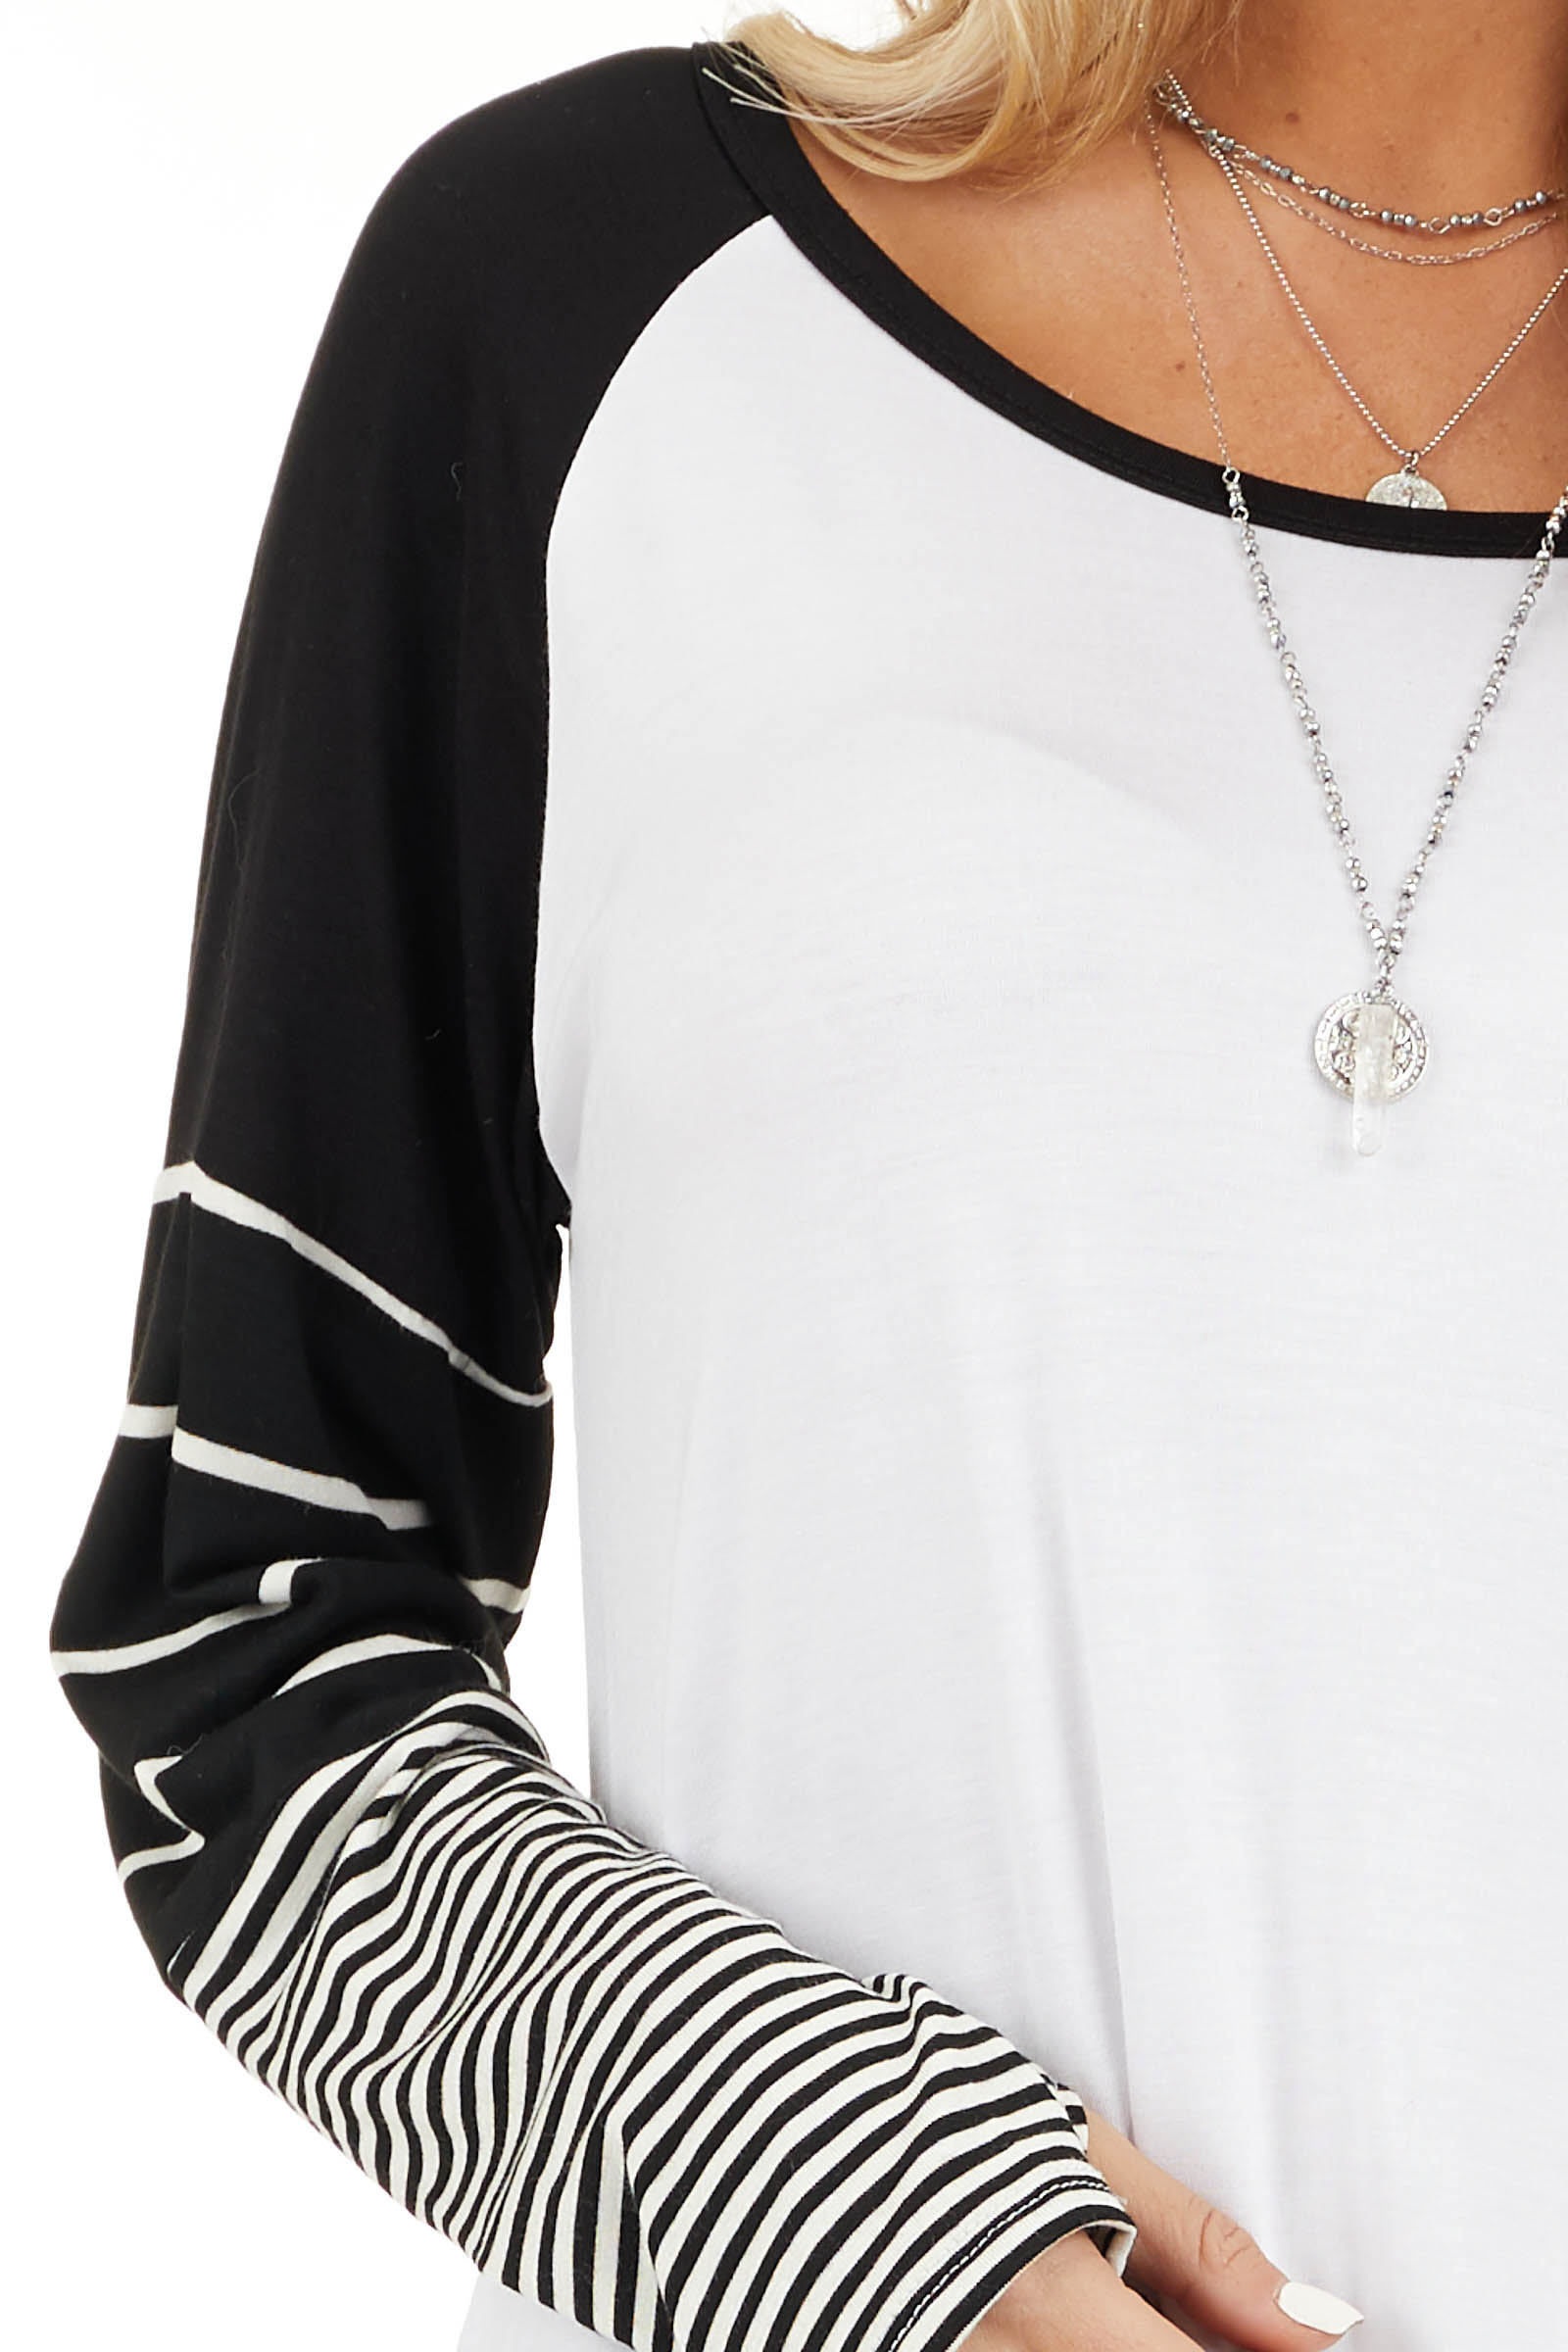 Black and White Knit Top with Long Striped Sleeves detail